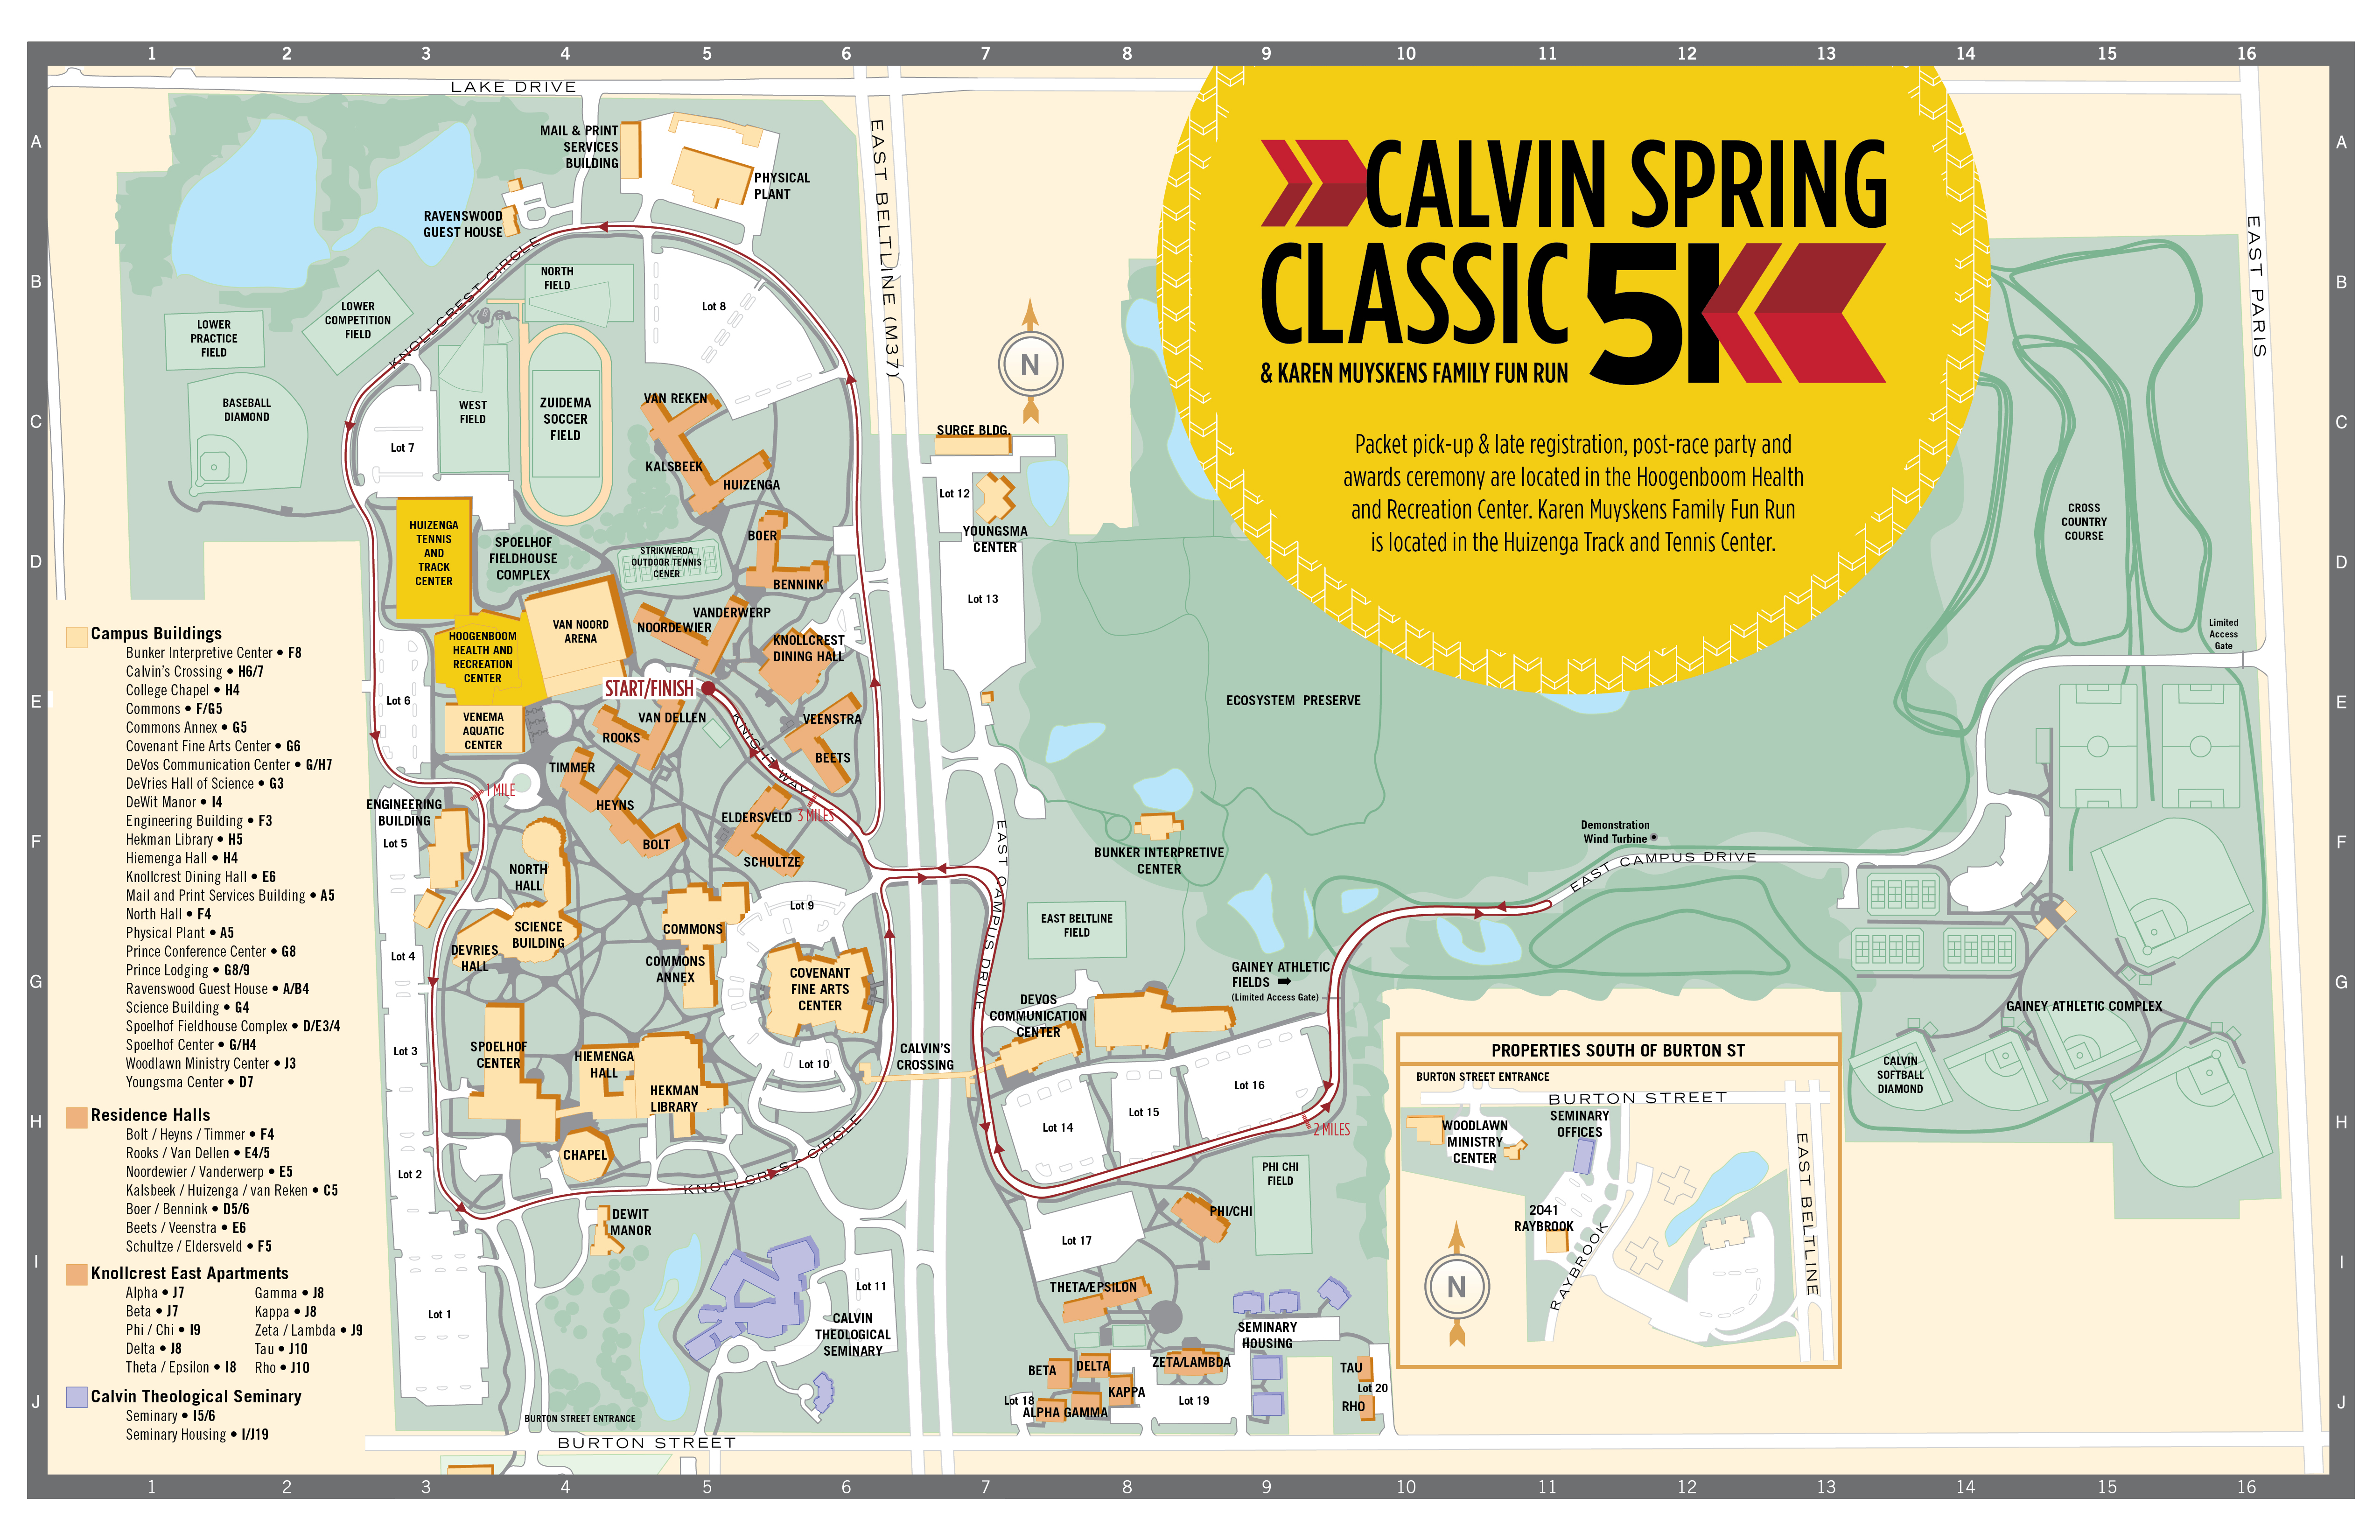 Calvin College 5k Spring Clic - Grand Rapids, MI on rio salado college map, richmond college map, walsh college map, kuyper college map, grace bible college map, trinity international university map, malone college map, western iowa tech community college map, kirtland community college map, jefferson college map, chatham college map, clarkson college map, folsom college map, anderson college map, bacone college map, warren college map, clarion college map, joliet jr college map, mercer college map, college of the atlantic map,